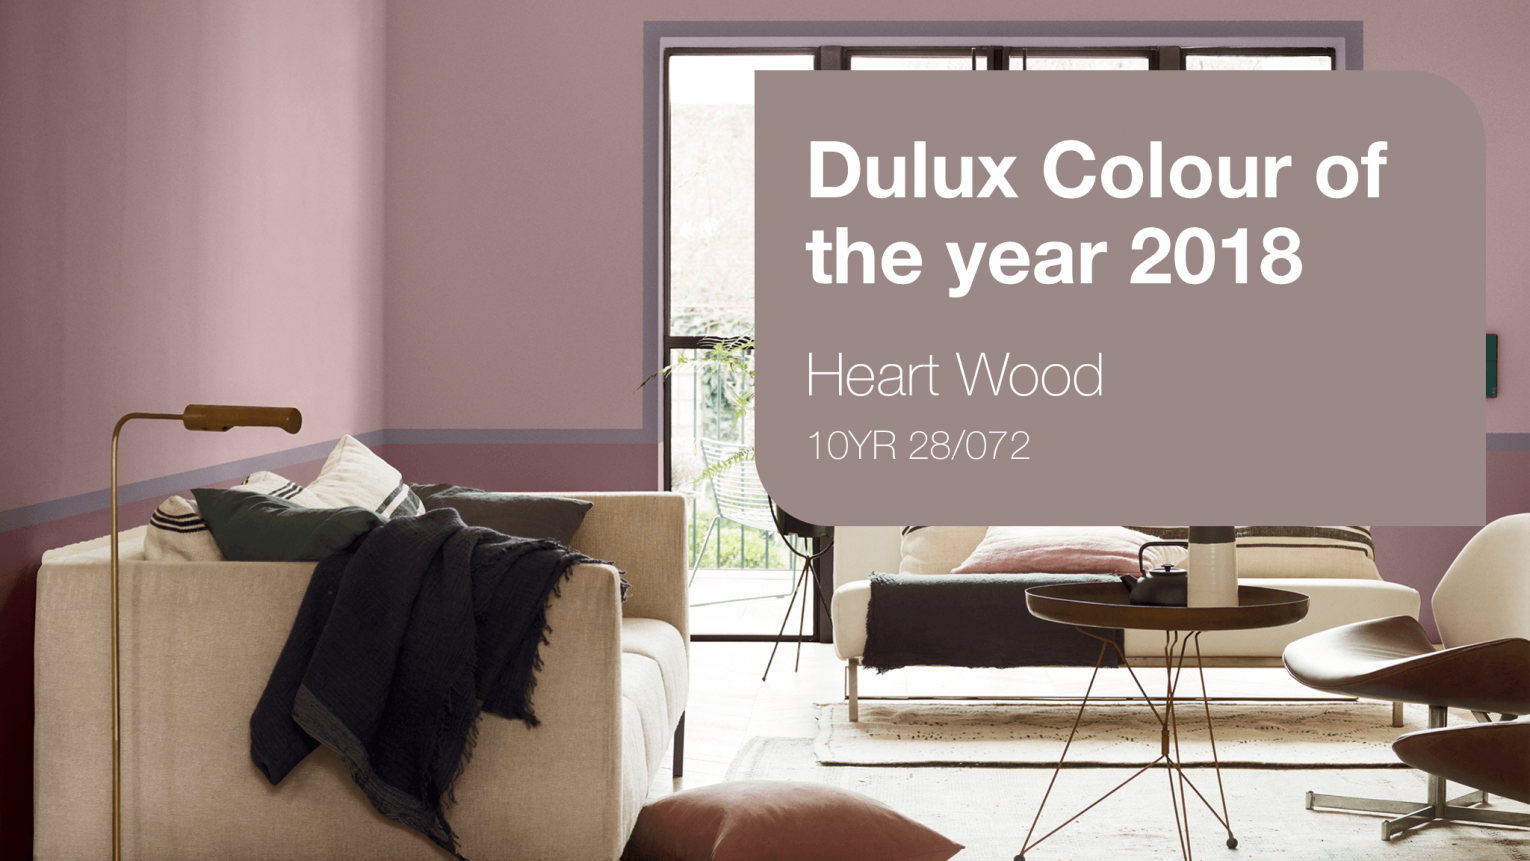 photo of dulux colour of the year 2018 Heart Wood